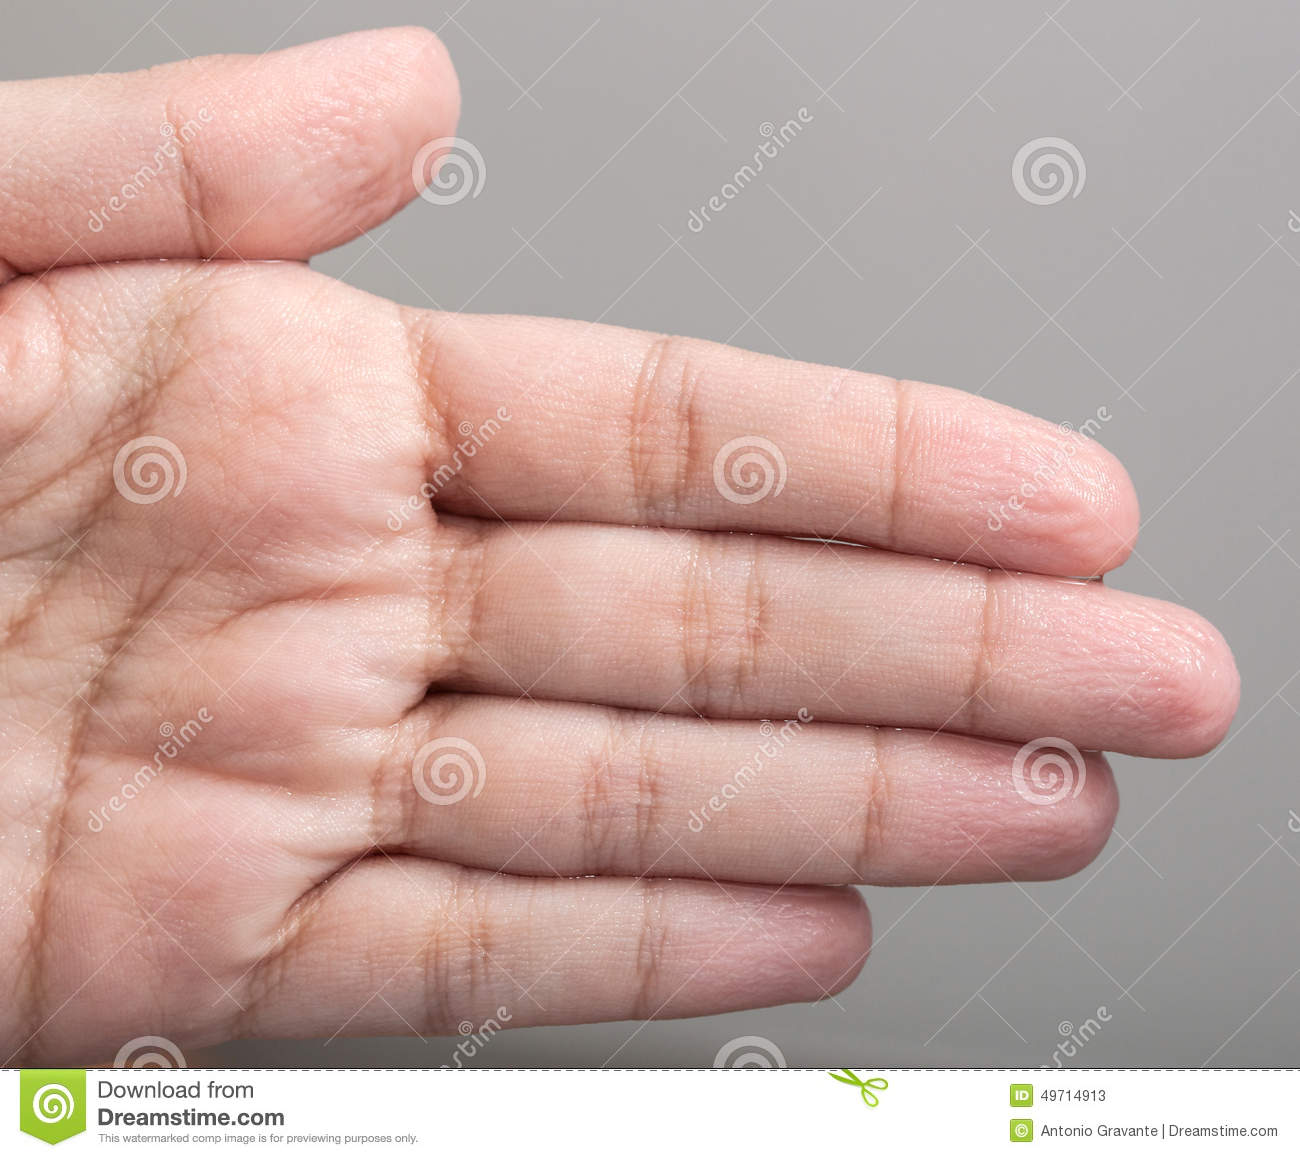 Wrinkled Skin Of The Hands Stock Photo - Image: 49714913